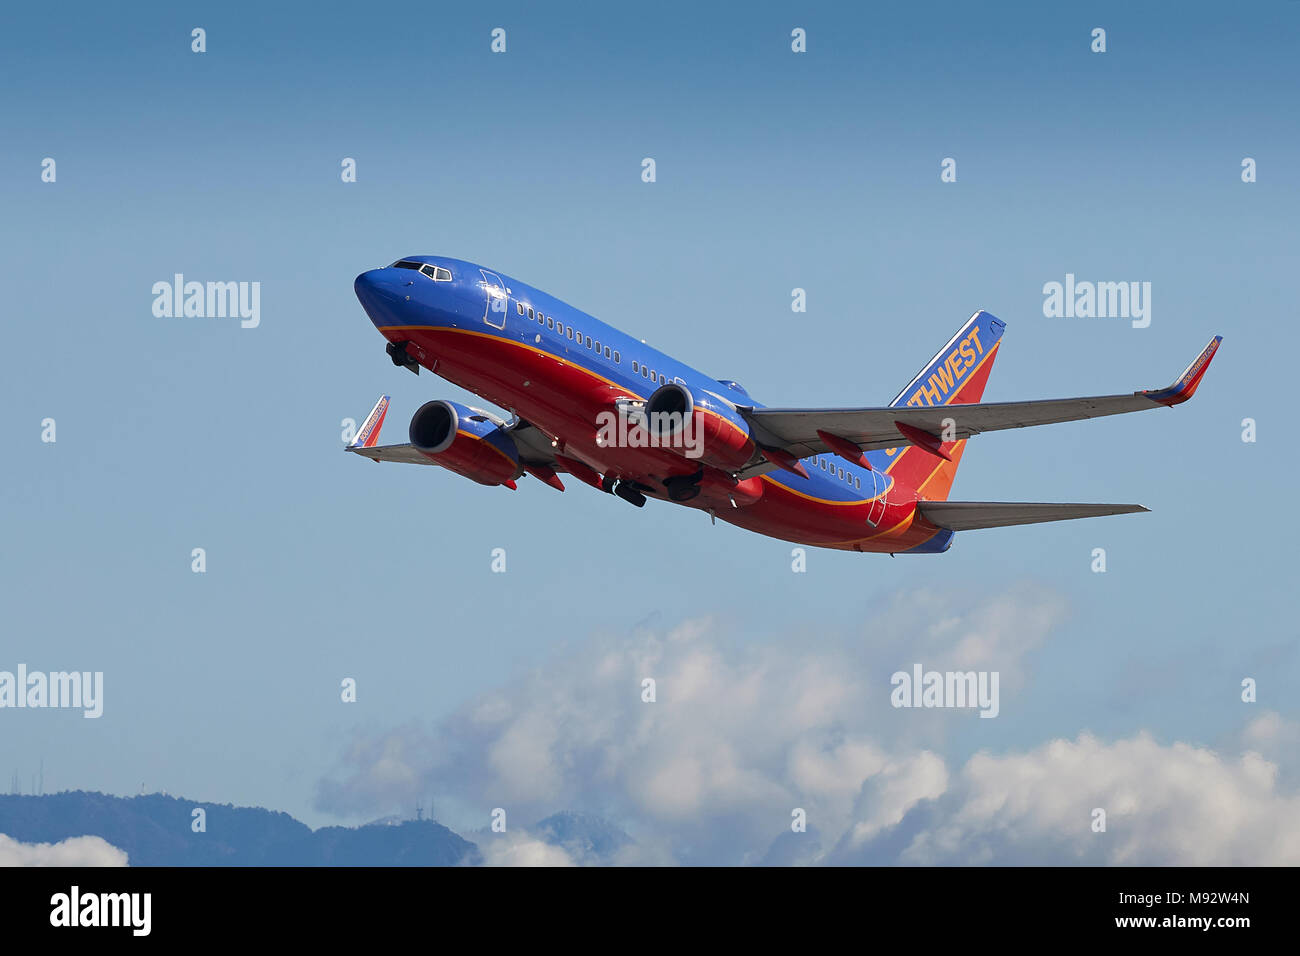 southwest airlines boeing 737 airliner taking off from los angeles